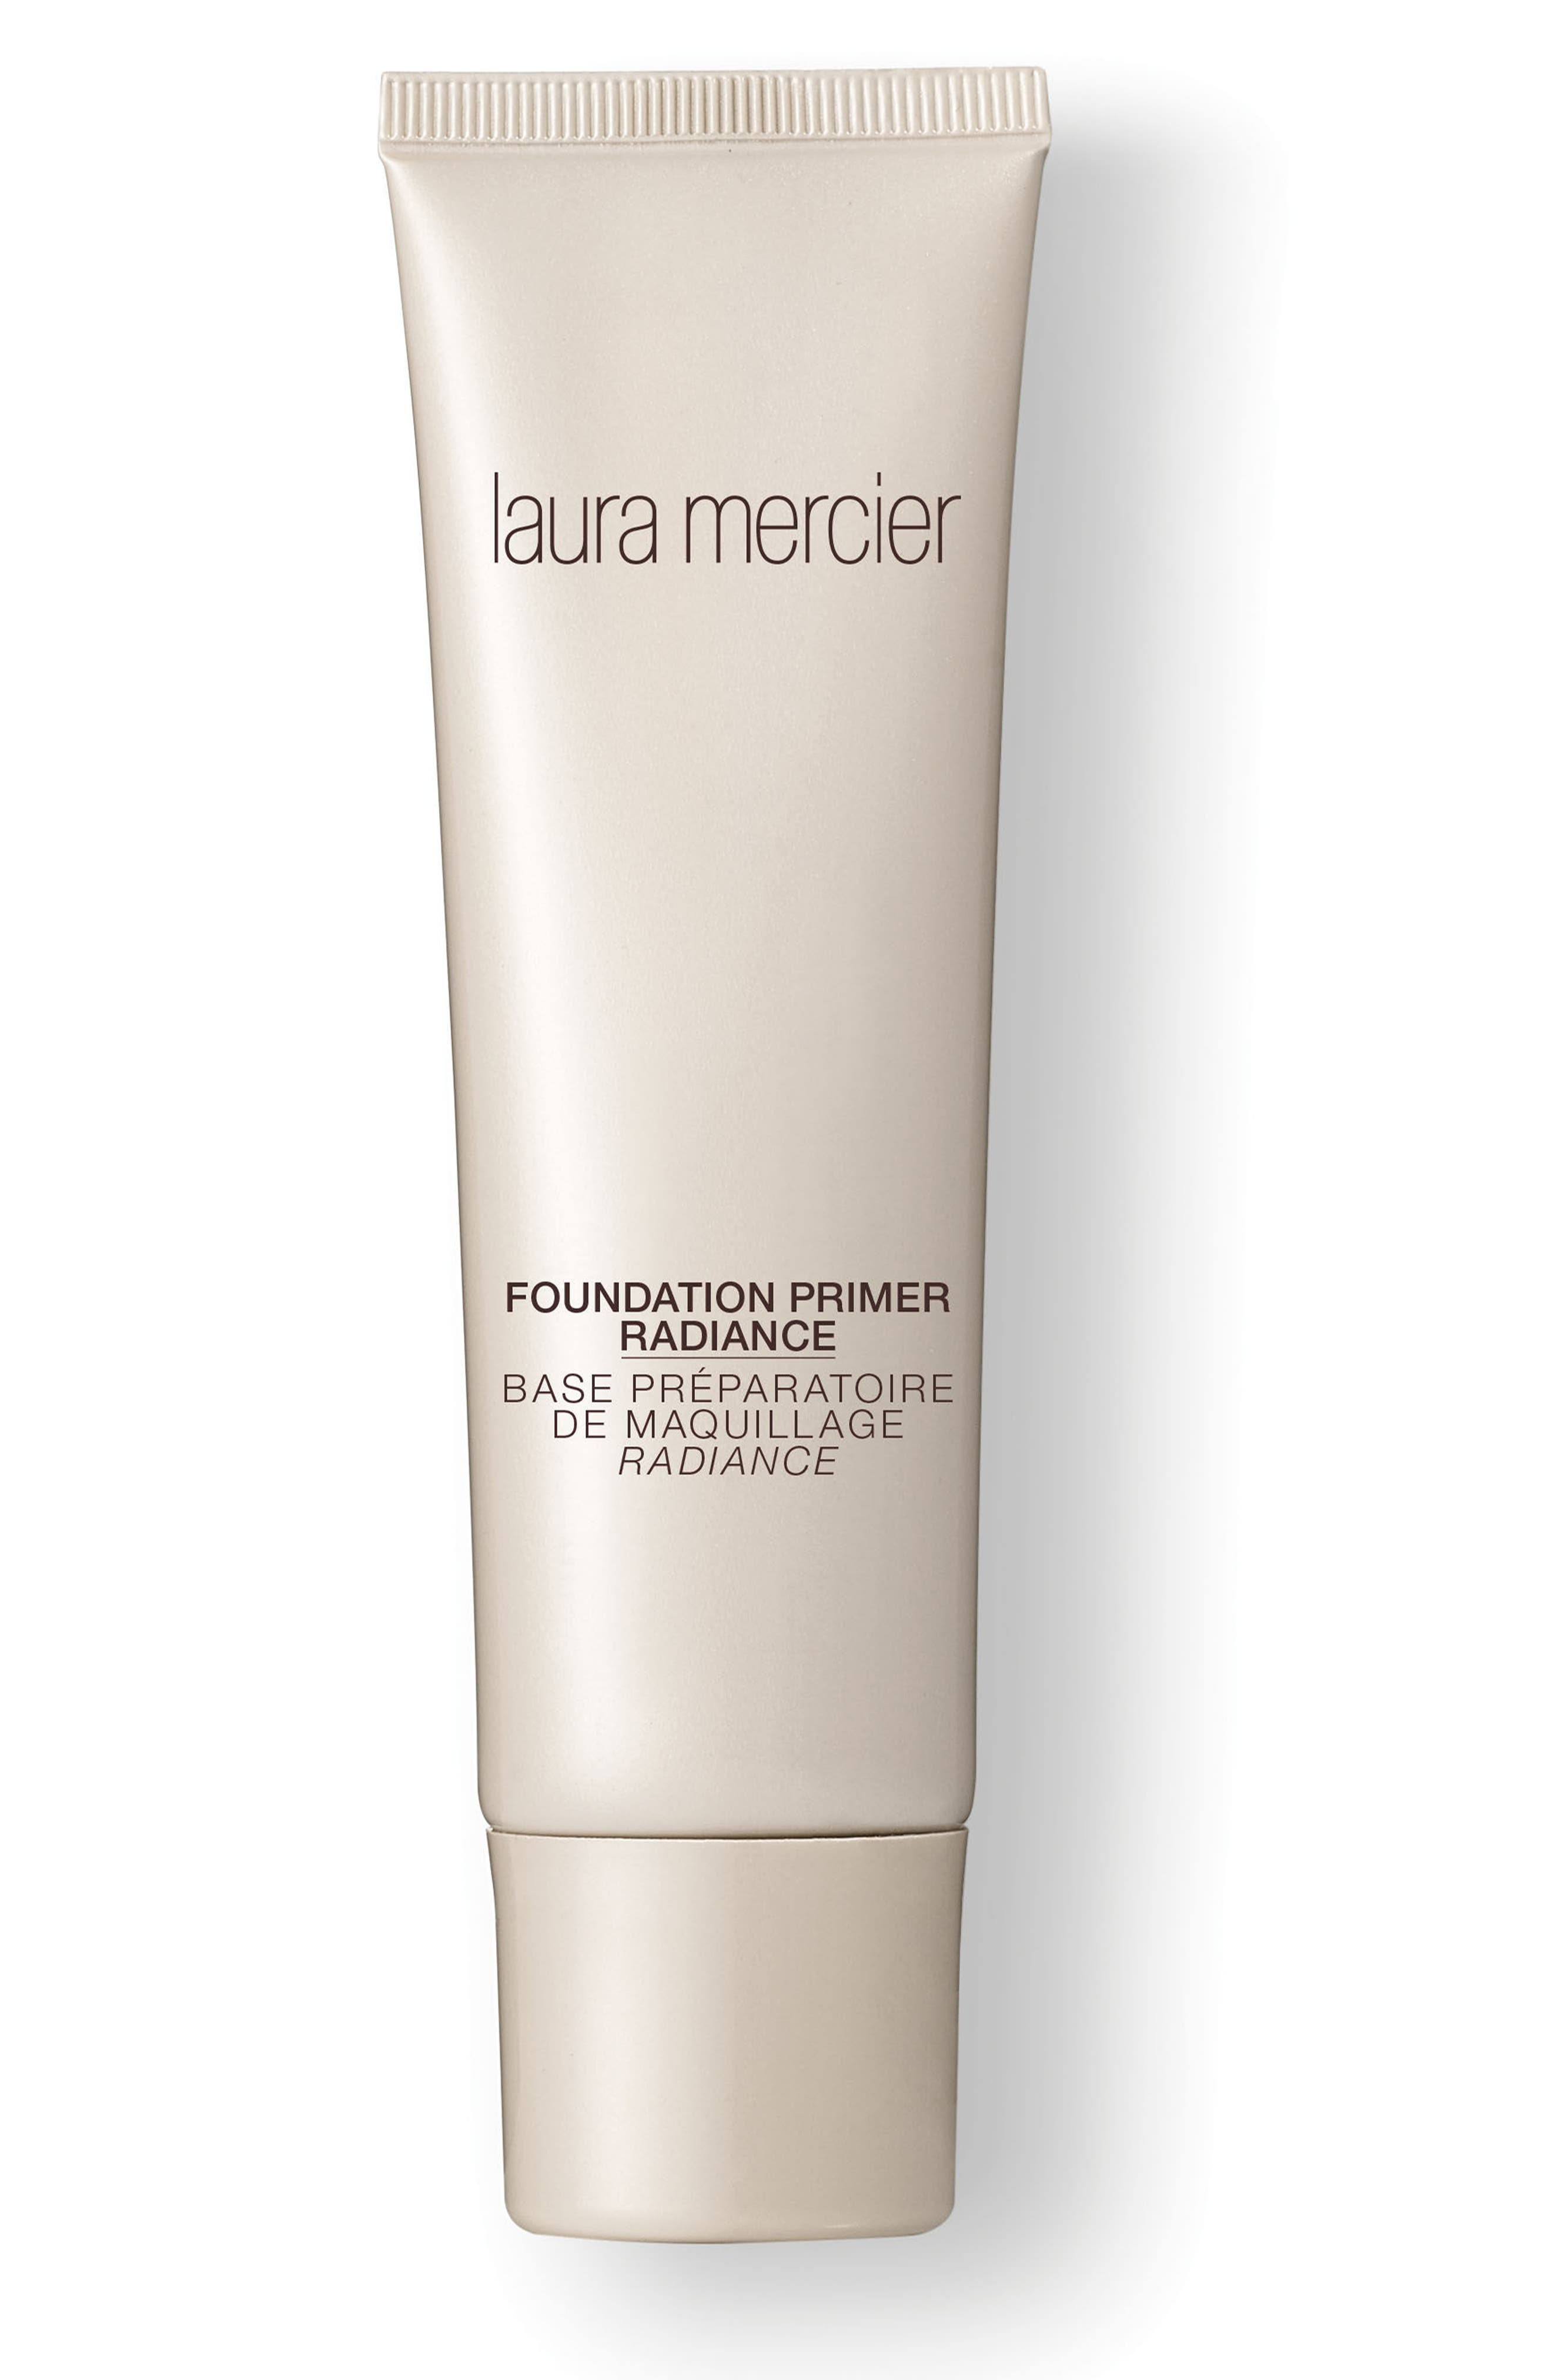 The One Thing: Laura Mercier Radiance FoundationPrimer recommend